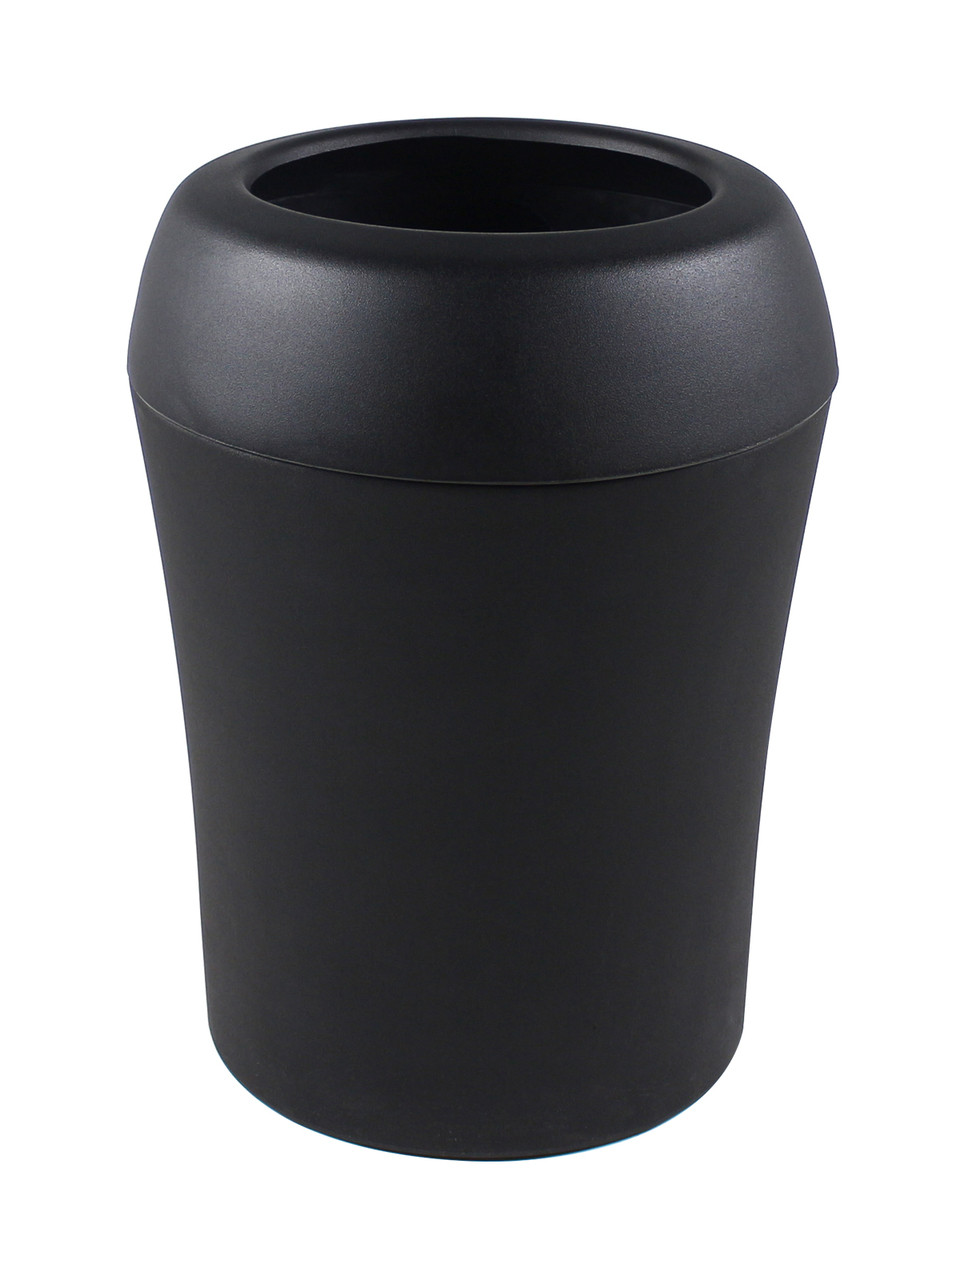 35 Gallon Infinite Select Plastic Indoor Outdoor Trash Can Black 101669